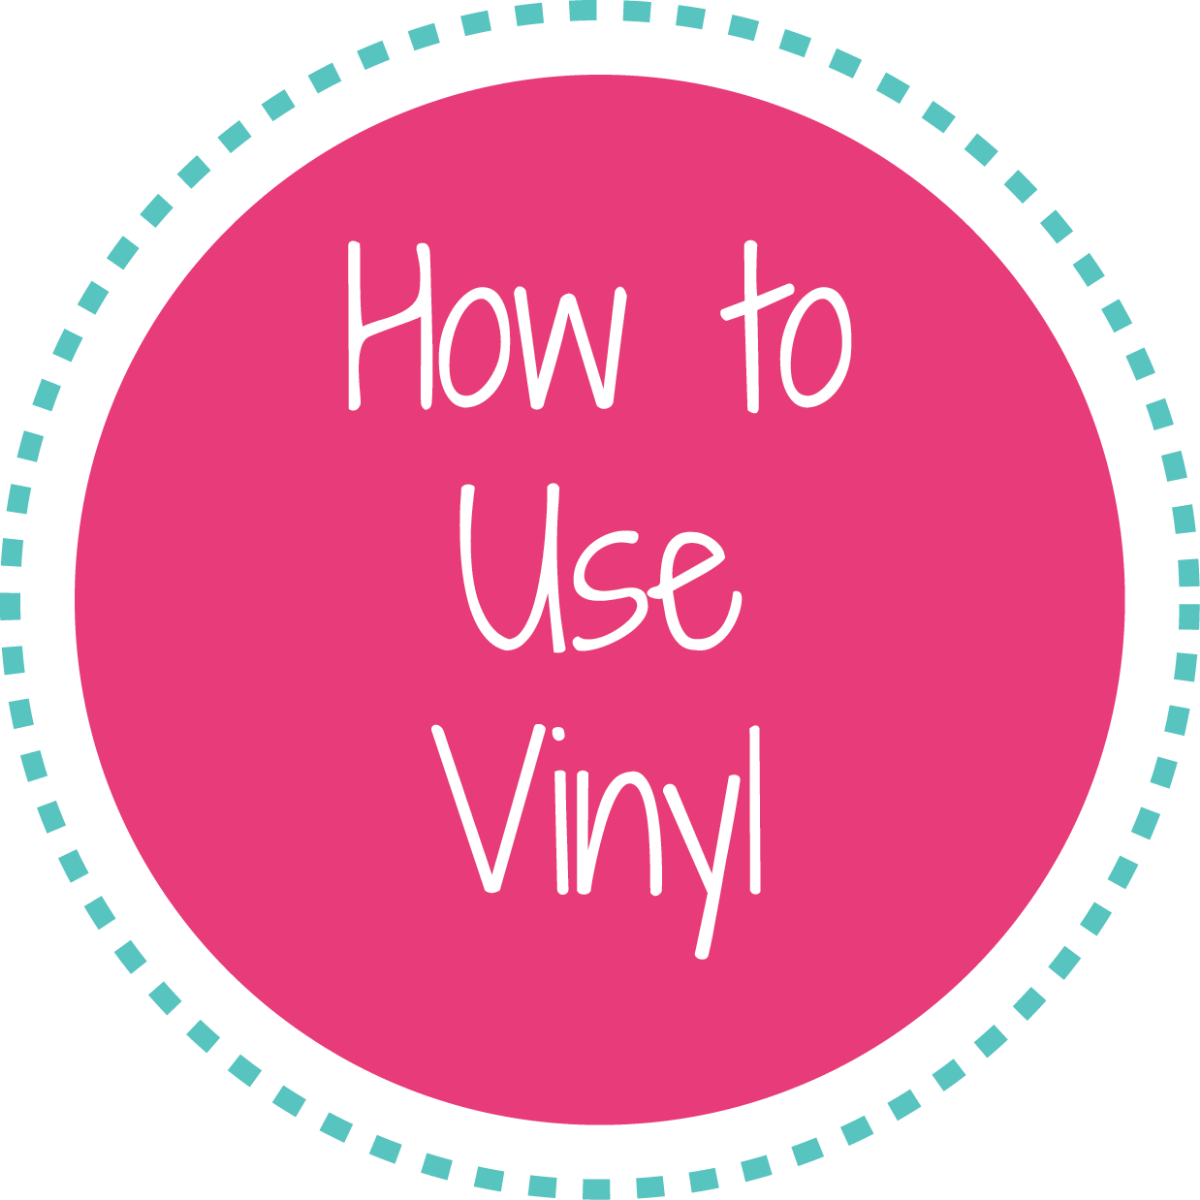 Click here to learn how to use vinyl